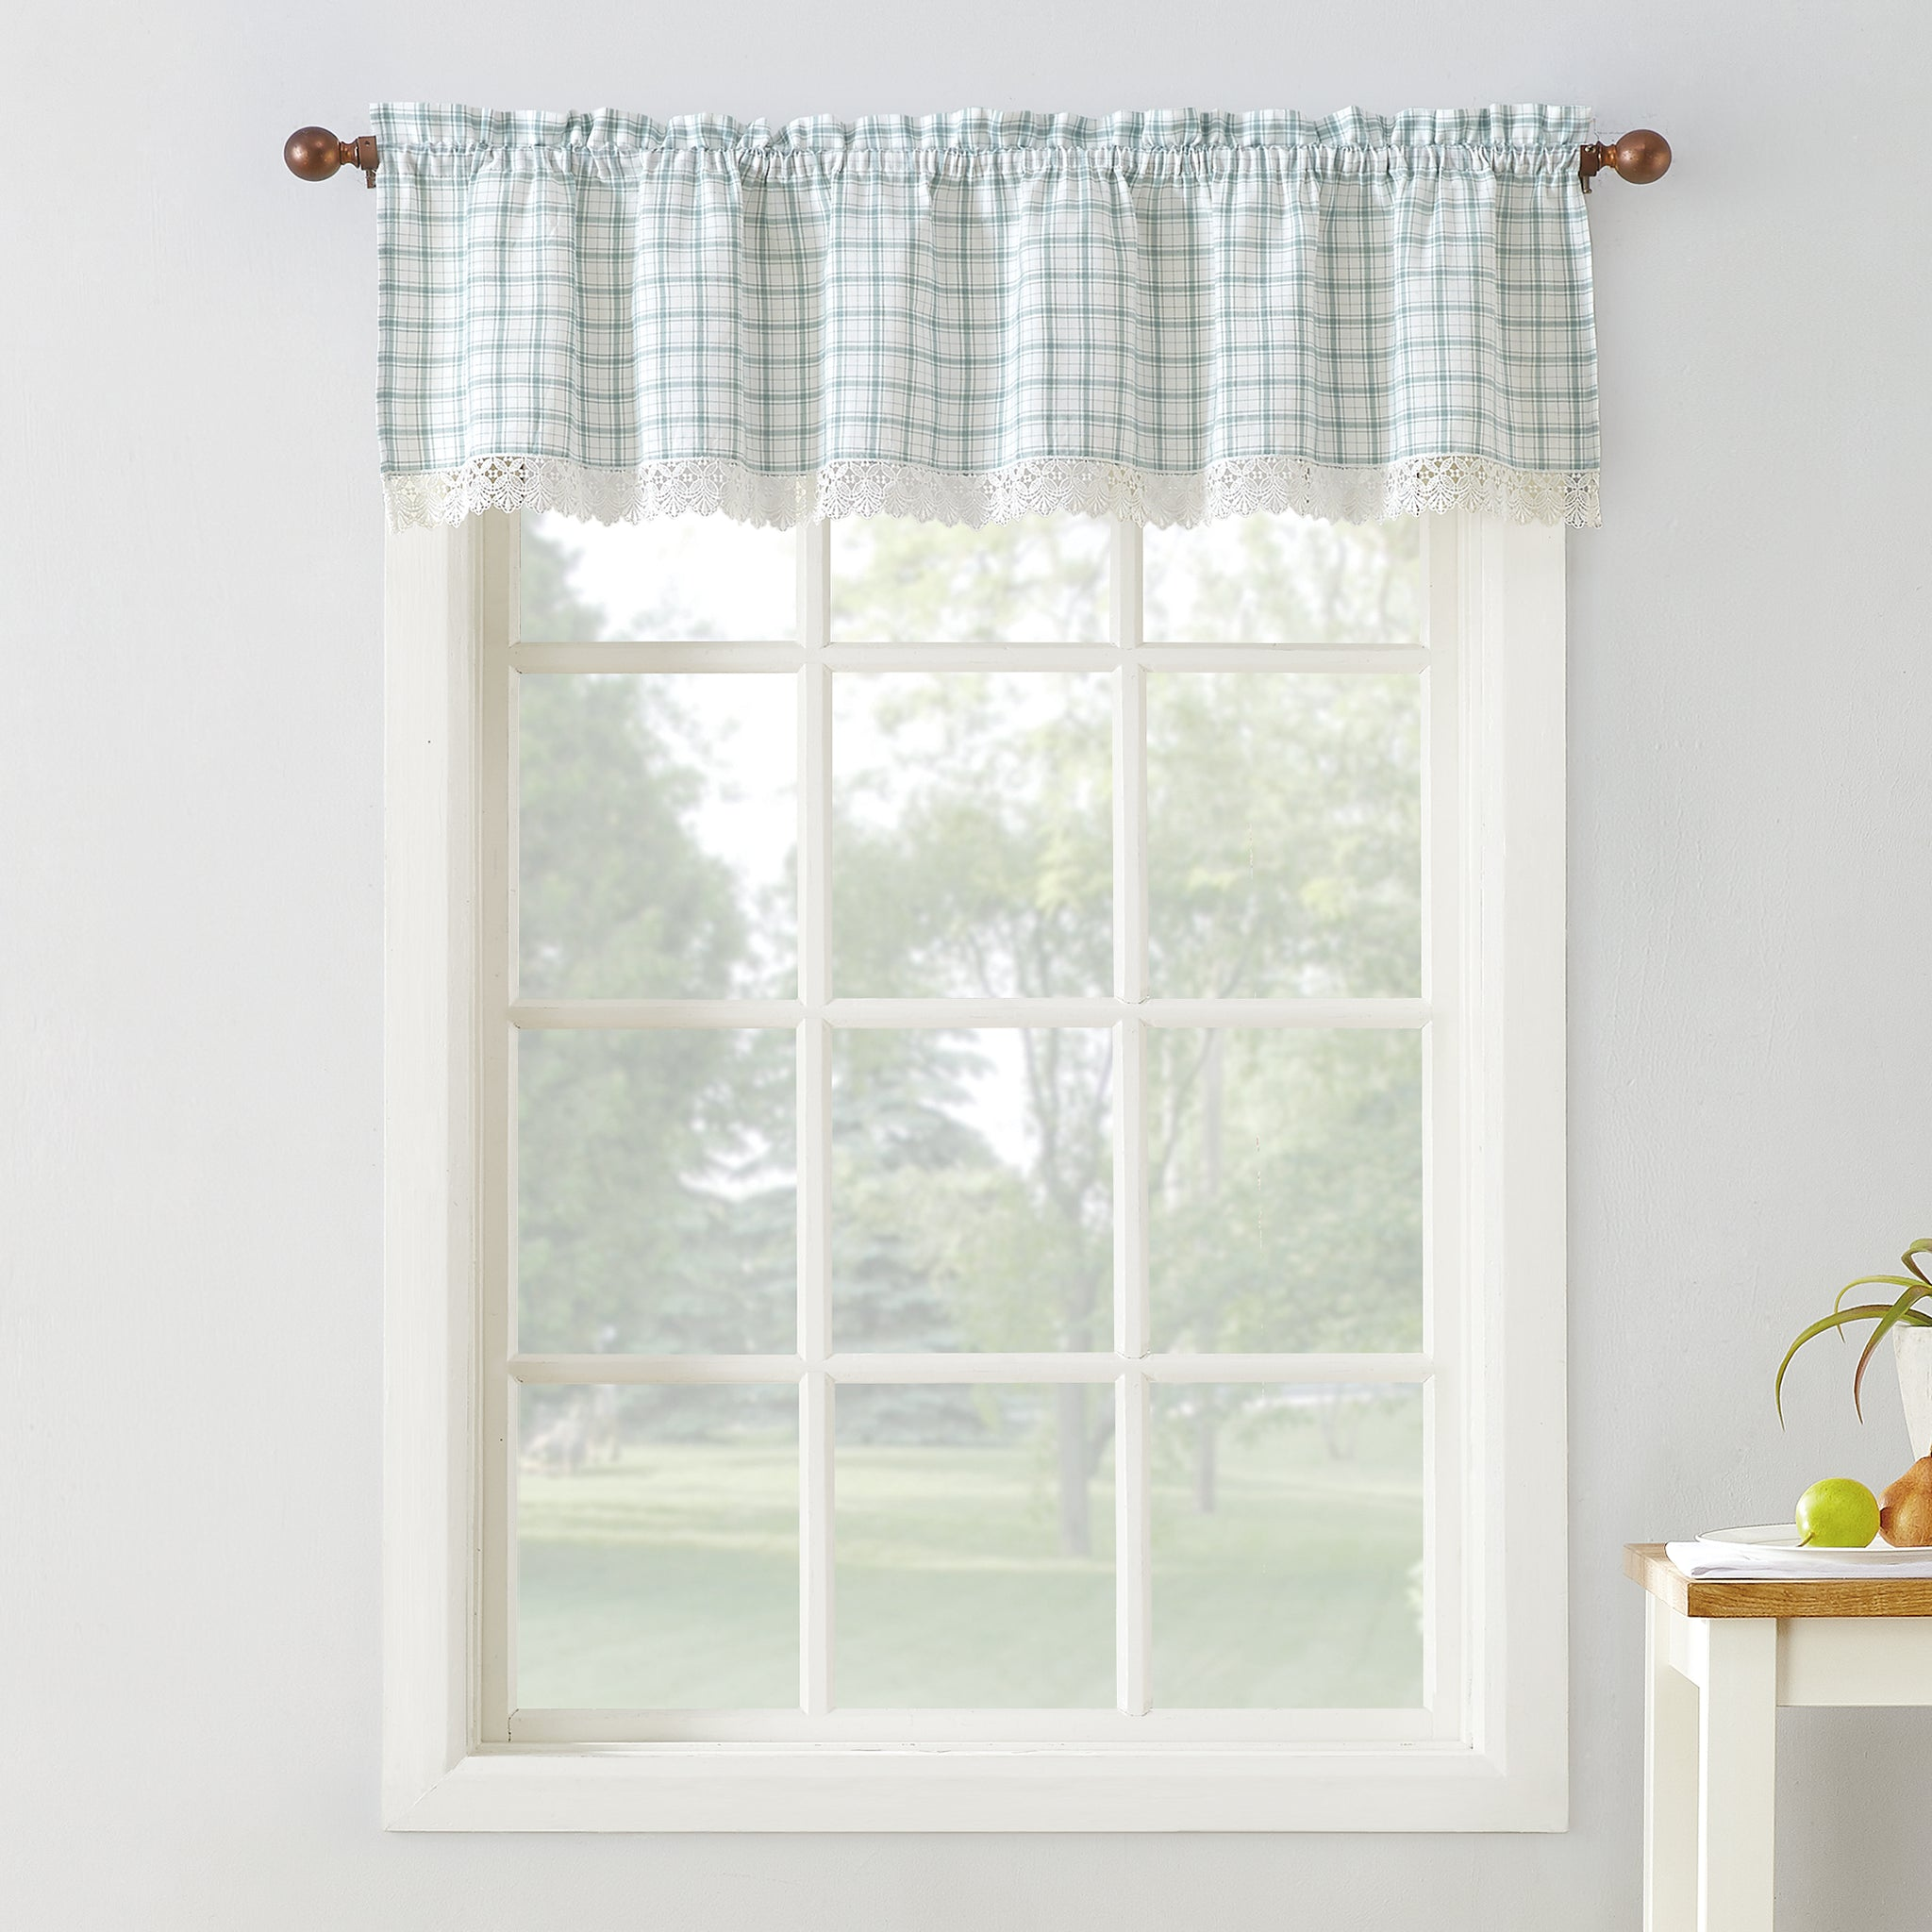 Maisie Rod Pocket Lace Trimmed Plaid Valance - 054x014 Aloe C42495- Marburn Curtains